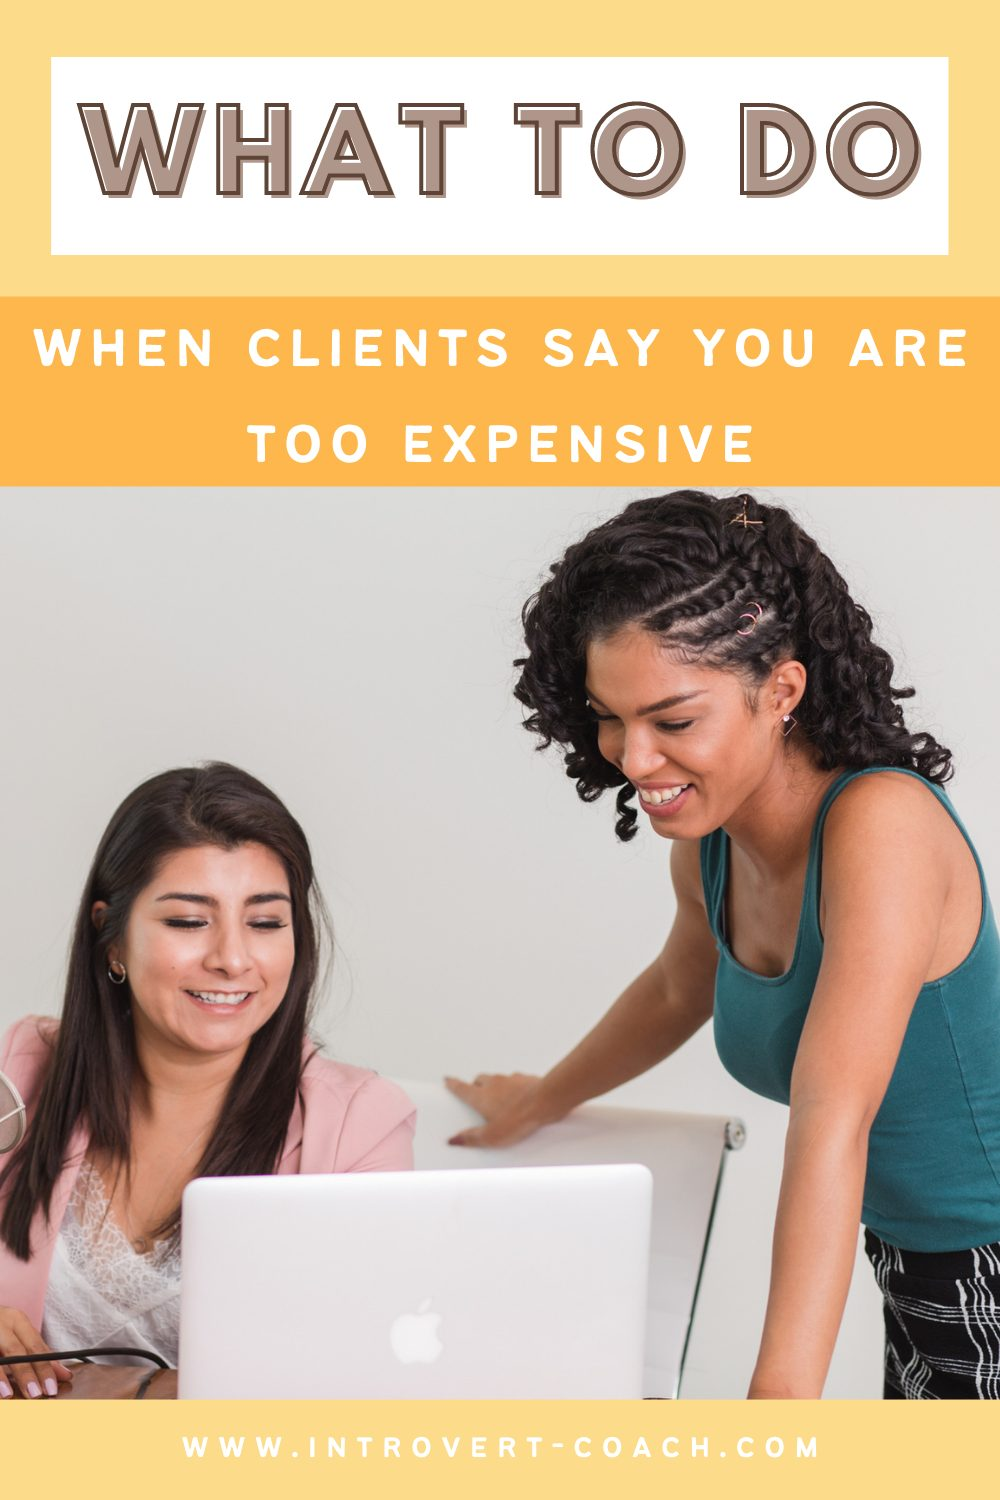 What to Do When Clients Say You Are Too Expensive